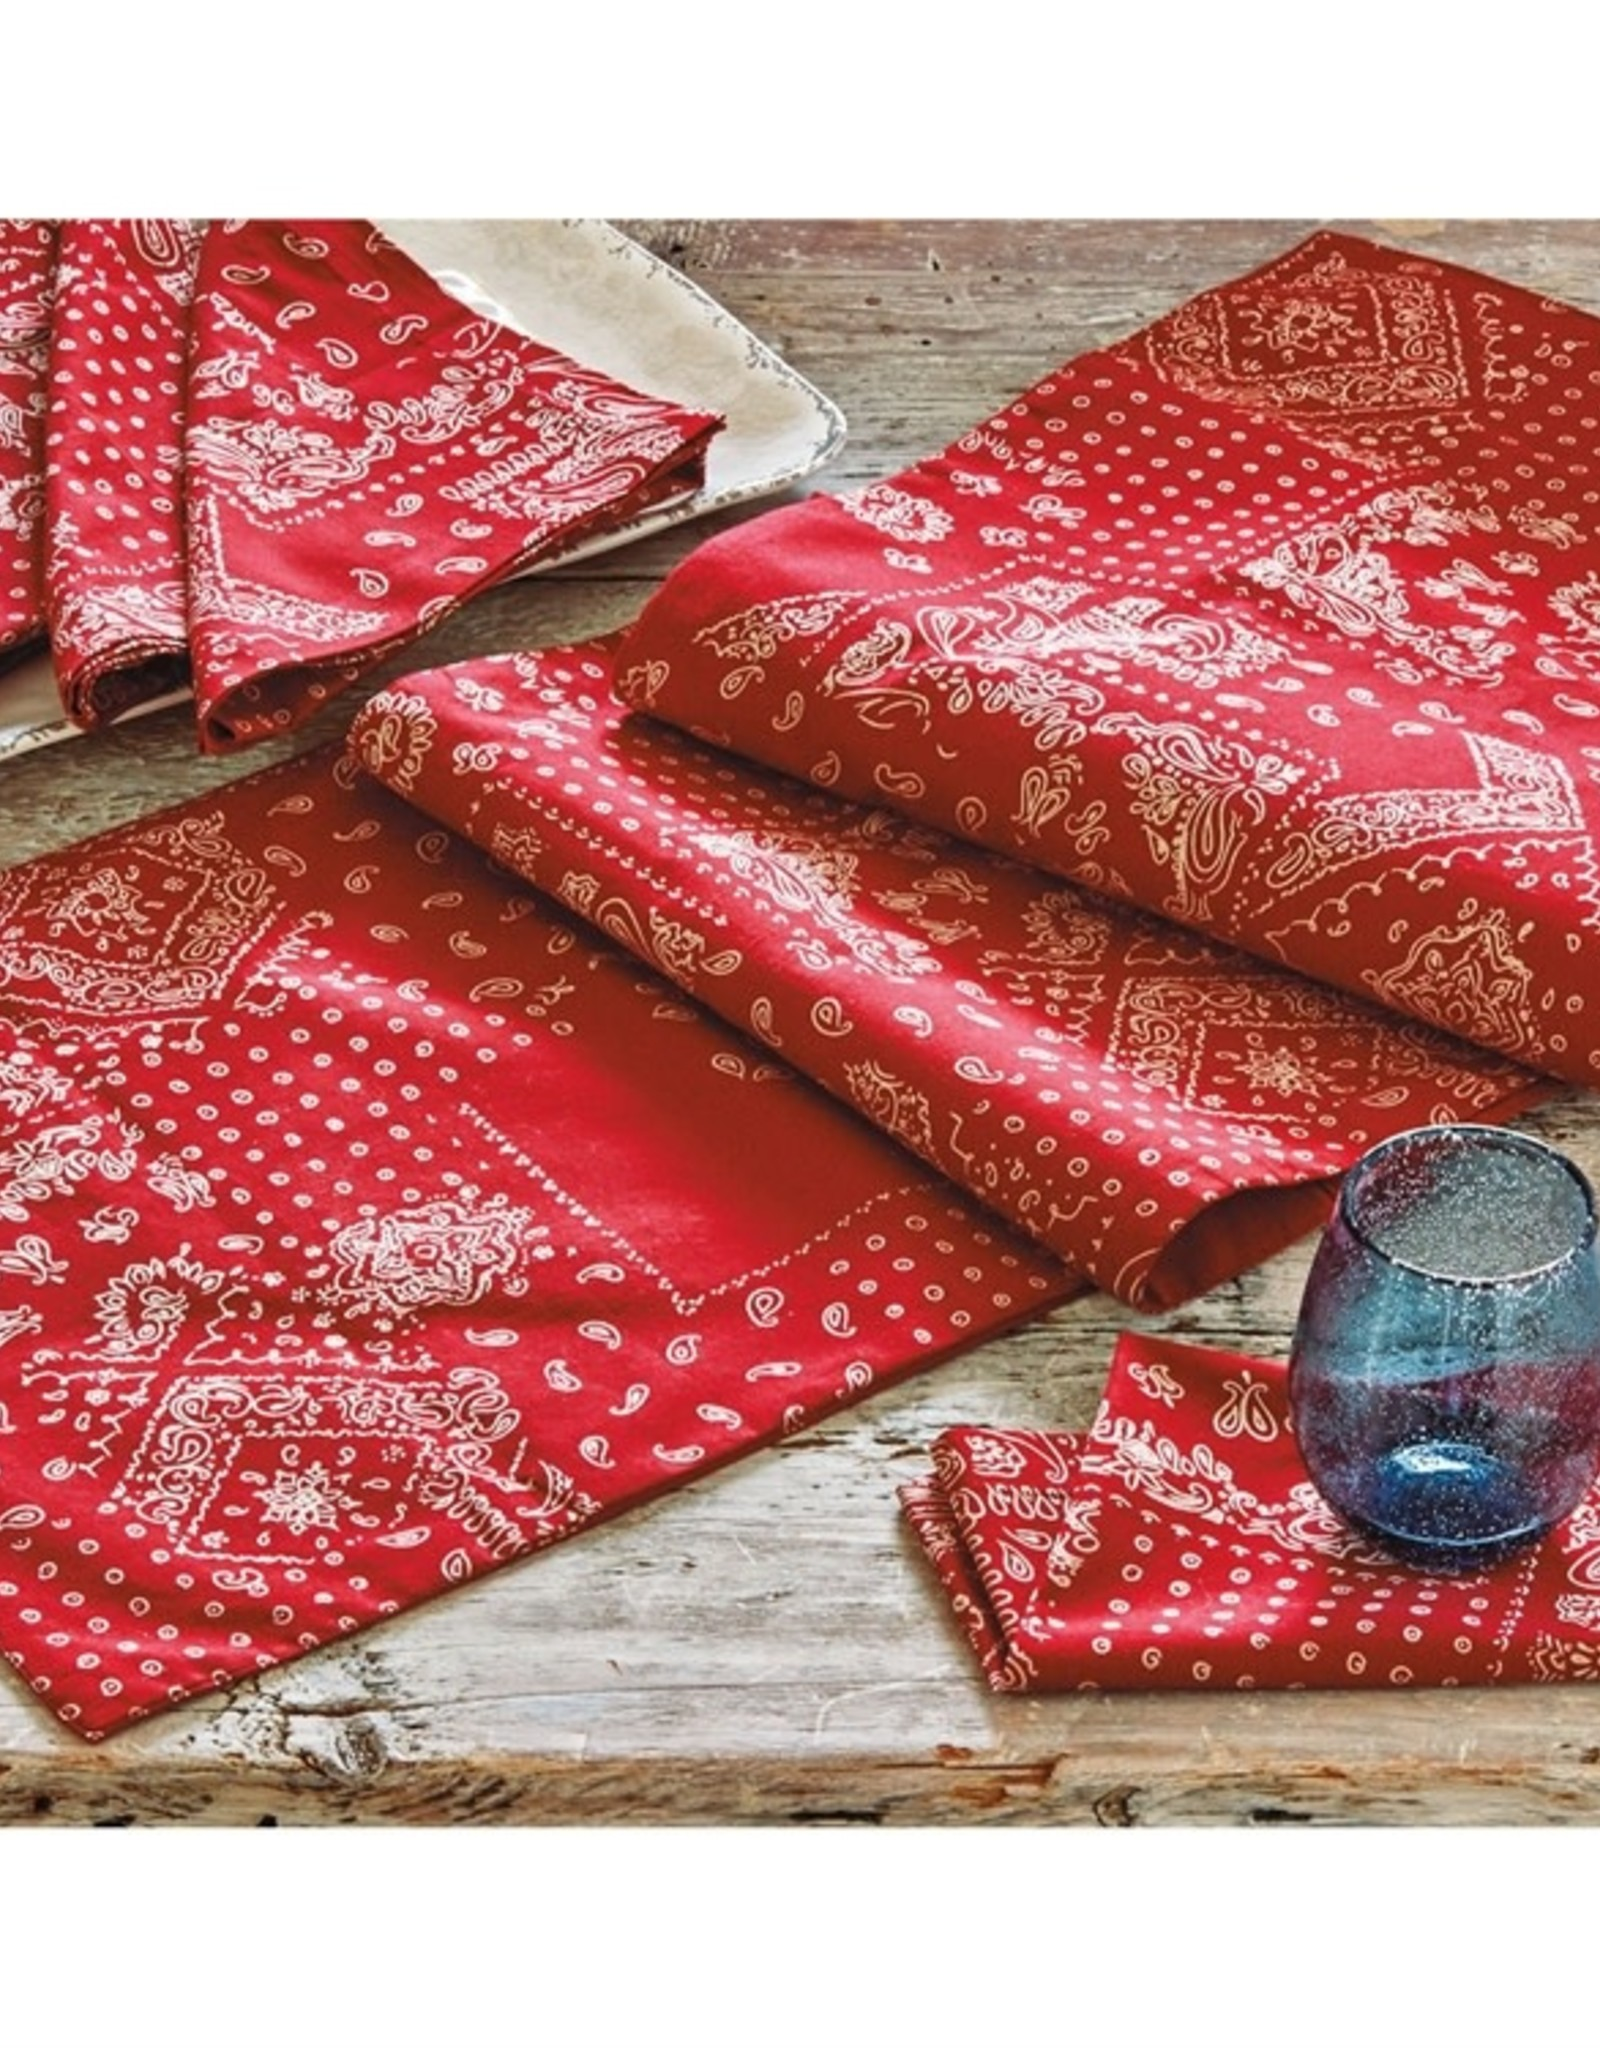 Tag S20 Table Runner, Red Bandana